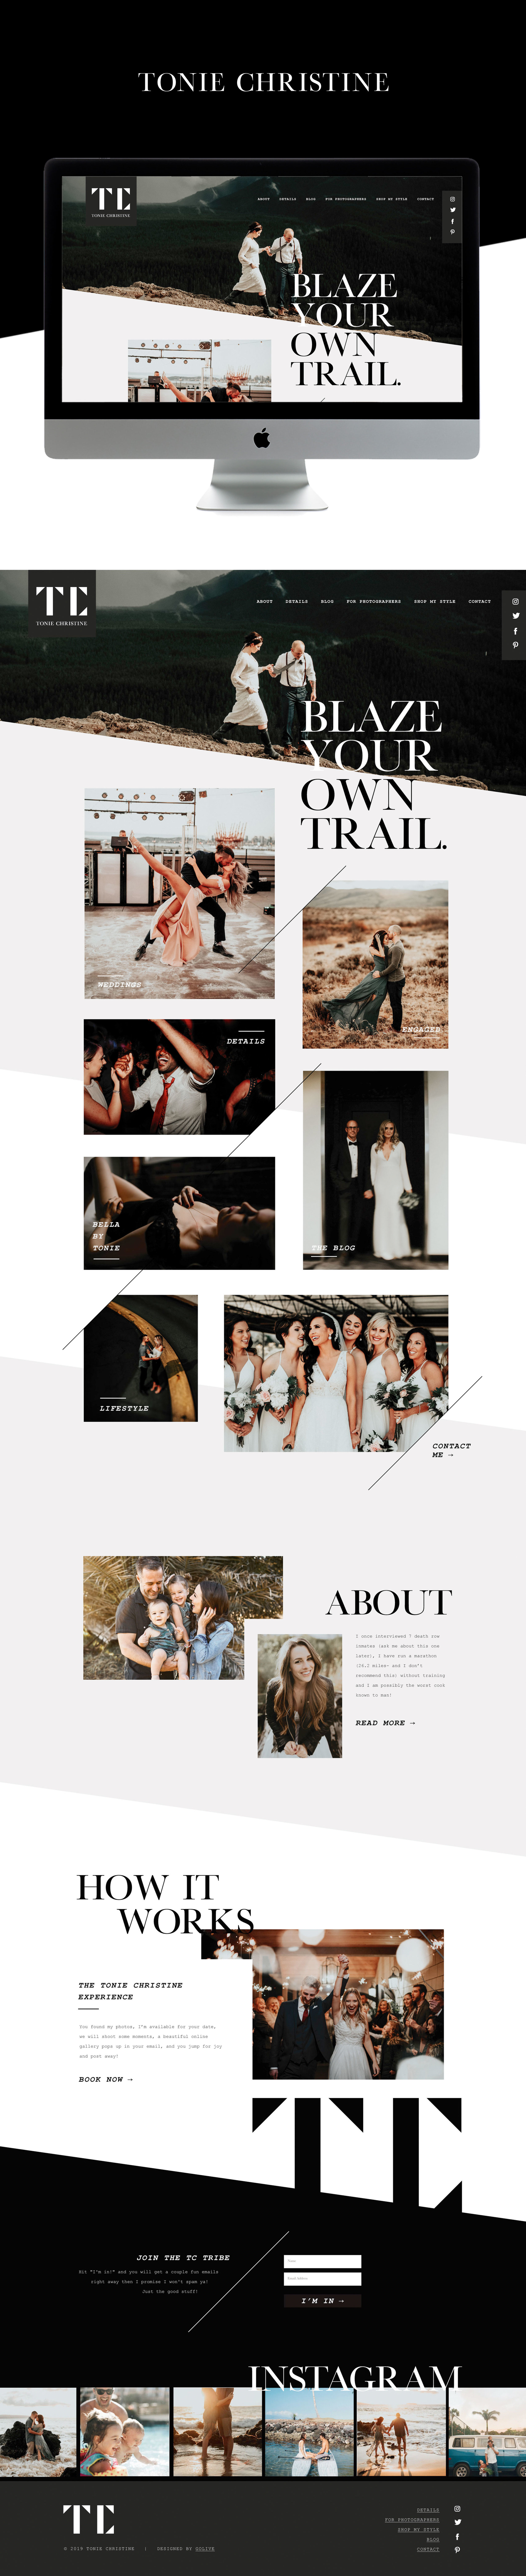 Modern, Bold, Edgy Squarespace Website Design For Photography Tonie Christine | By GoLive